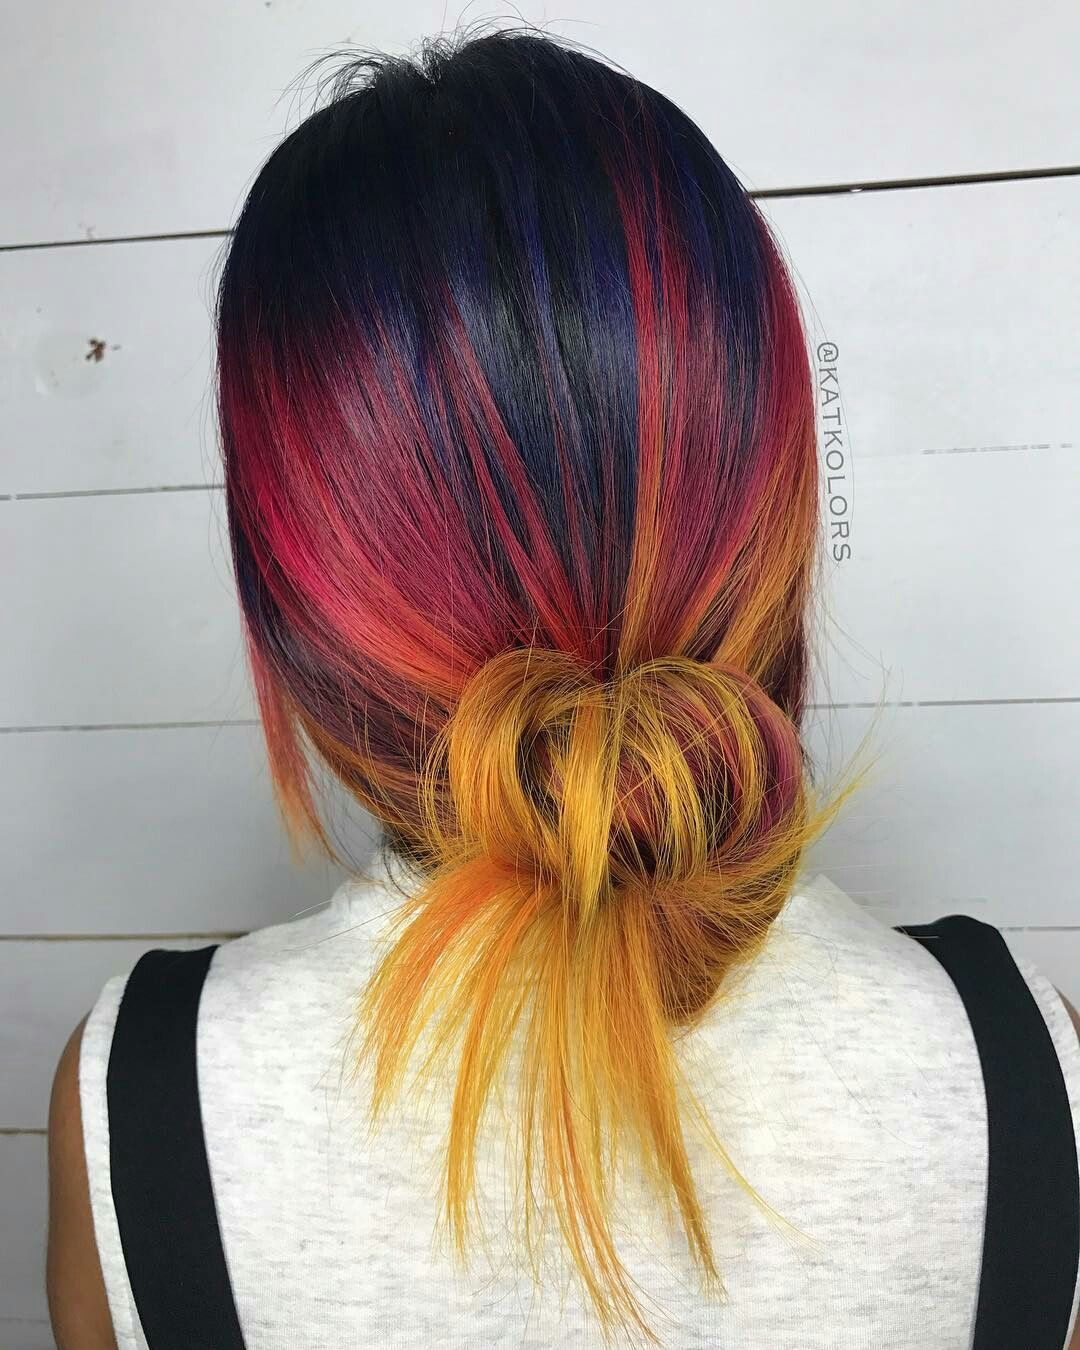 Pin by cassie sexton on hair colored pinterest hair hair styles